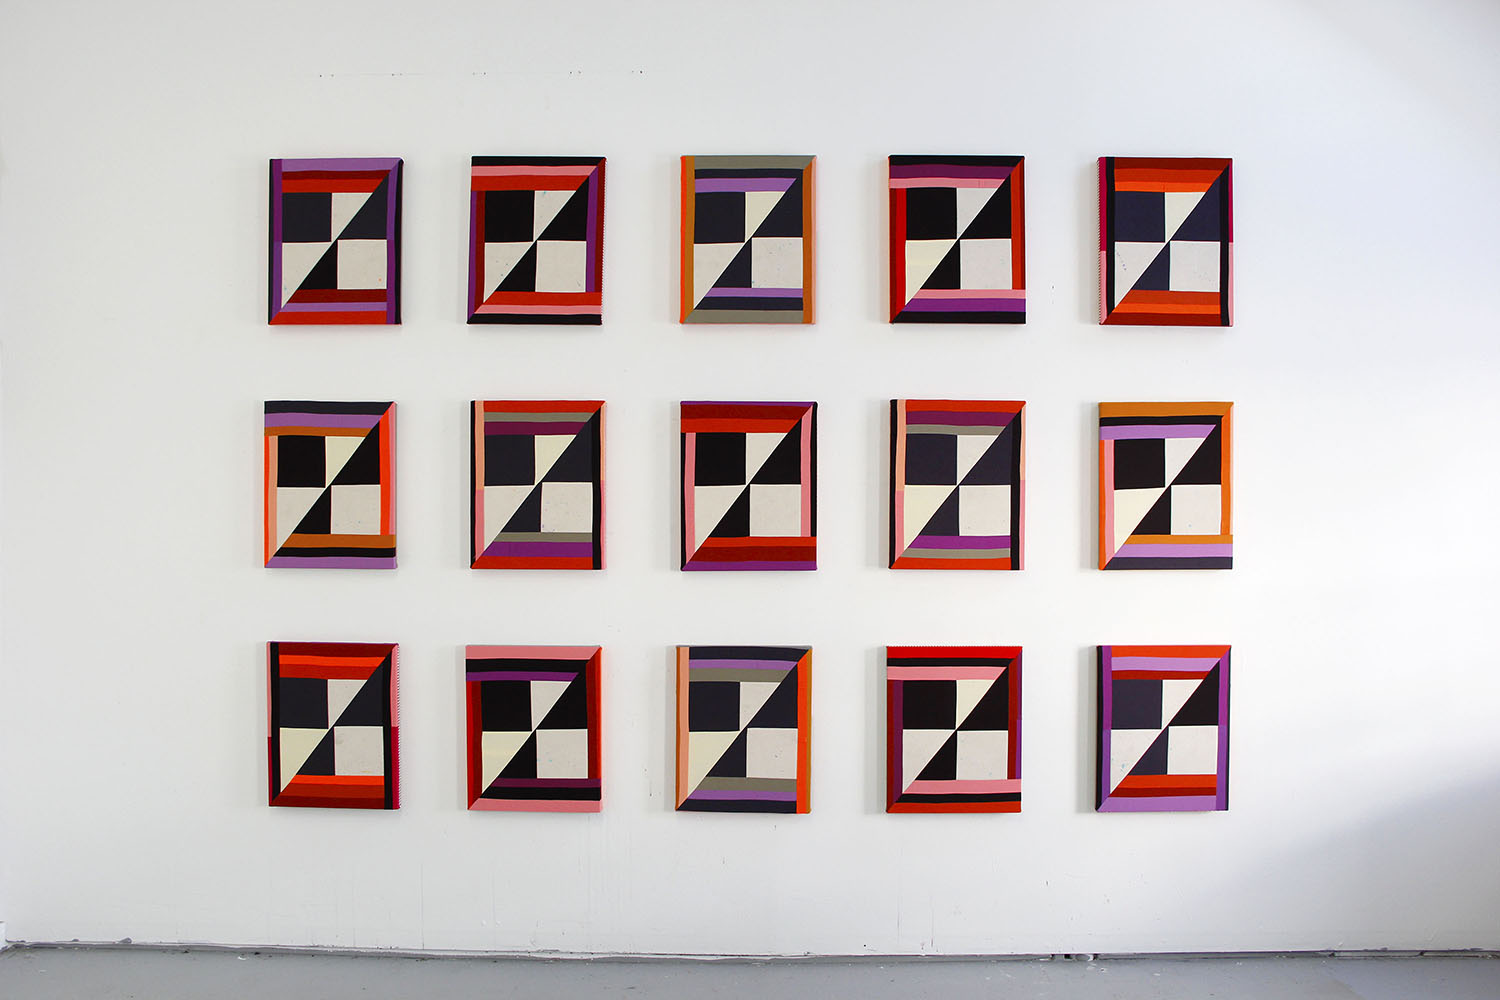 Every One   ,  2019 Sewn cotton, canvas, acrylic (15 panels) 20 x 16 inches each (50.8 x 40.6 cm) Patricia Sweetow Gallery, San Francisco, CA